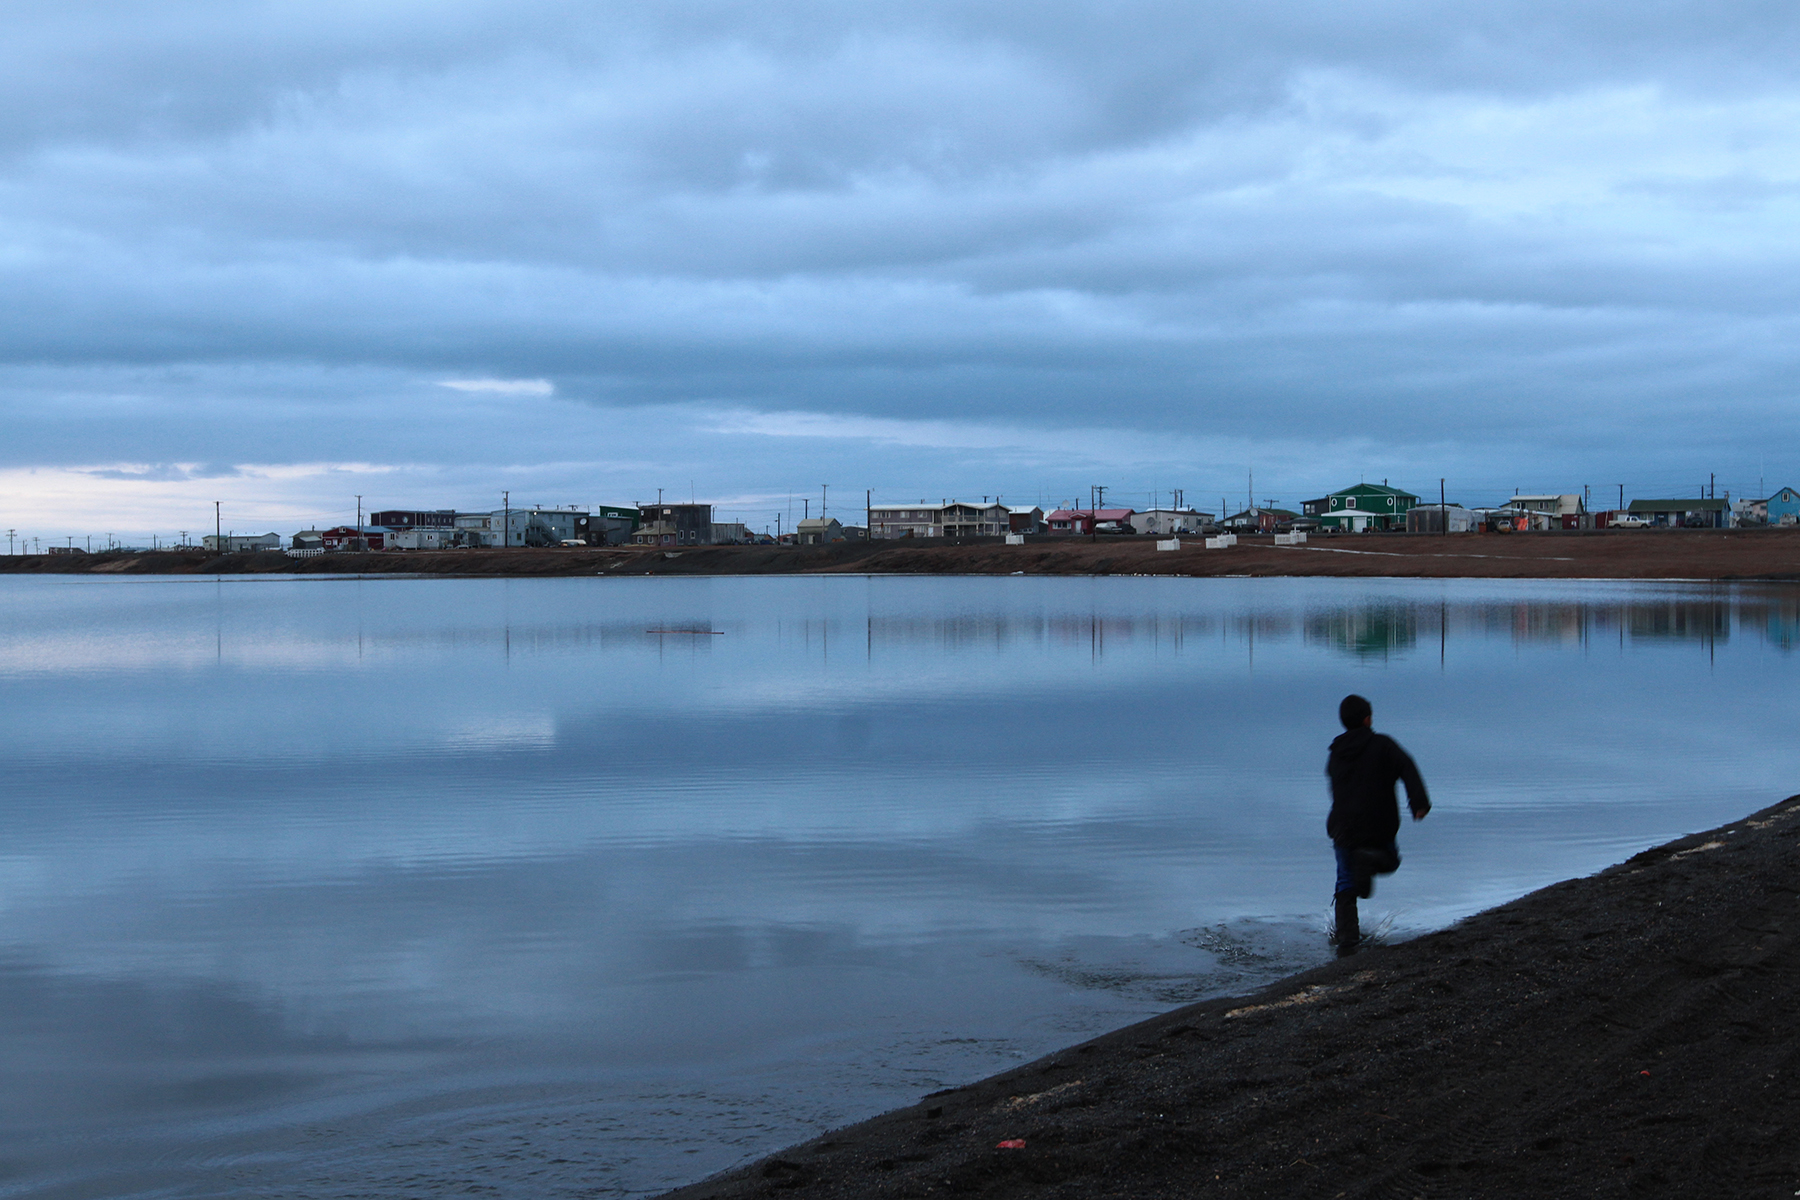 Several lagoons divide the town. In winter, they freeze solid and can be walked across or driven over with snowmobiles.